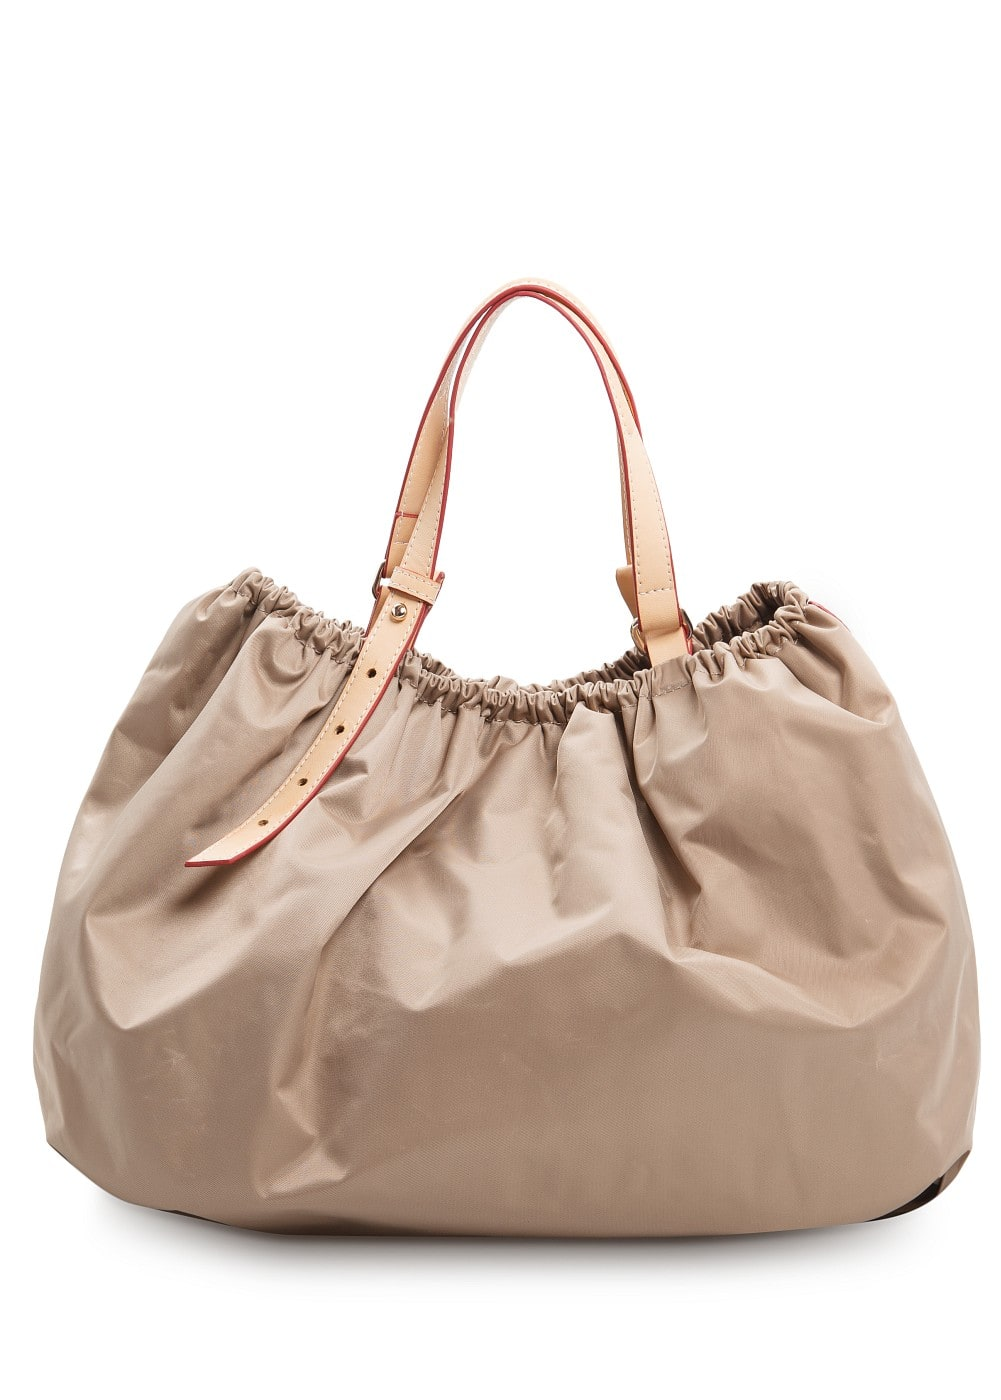 Nylon shopper tas